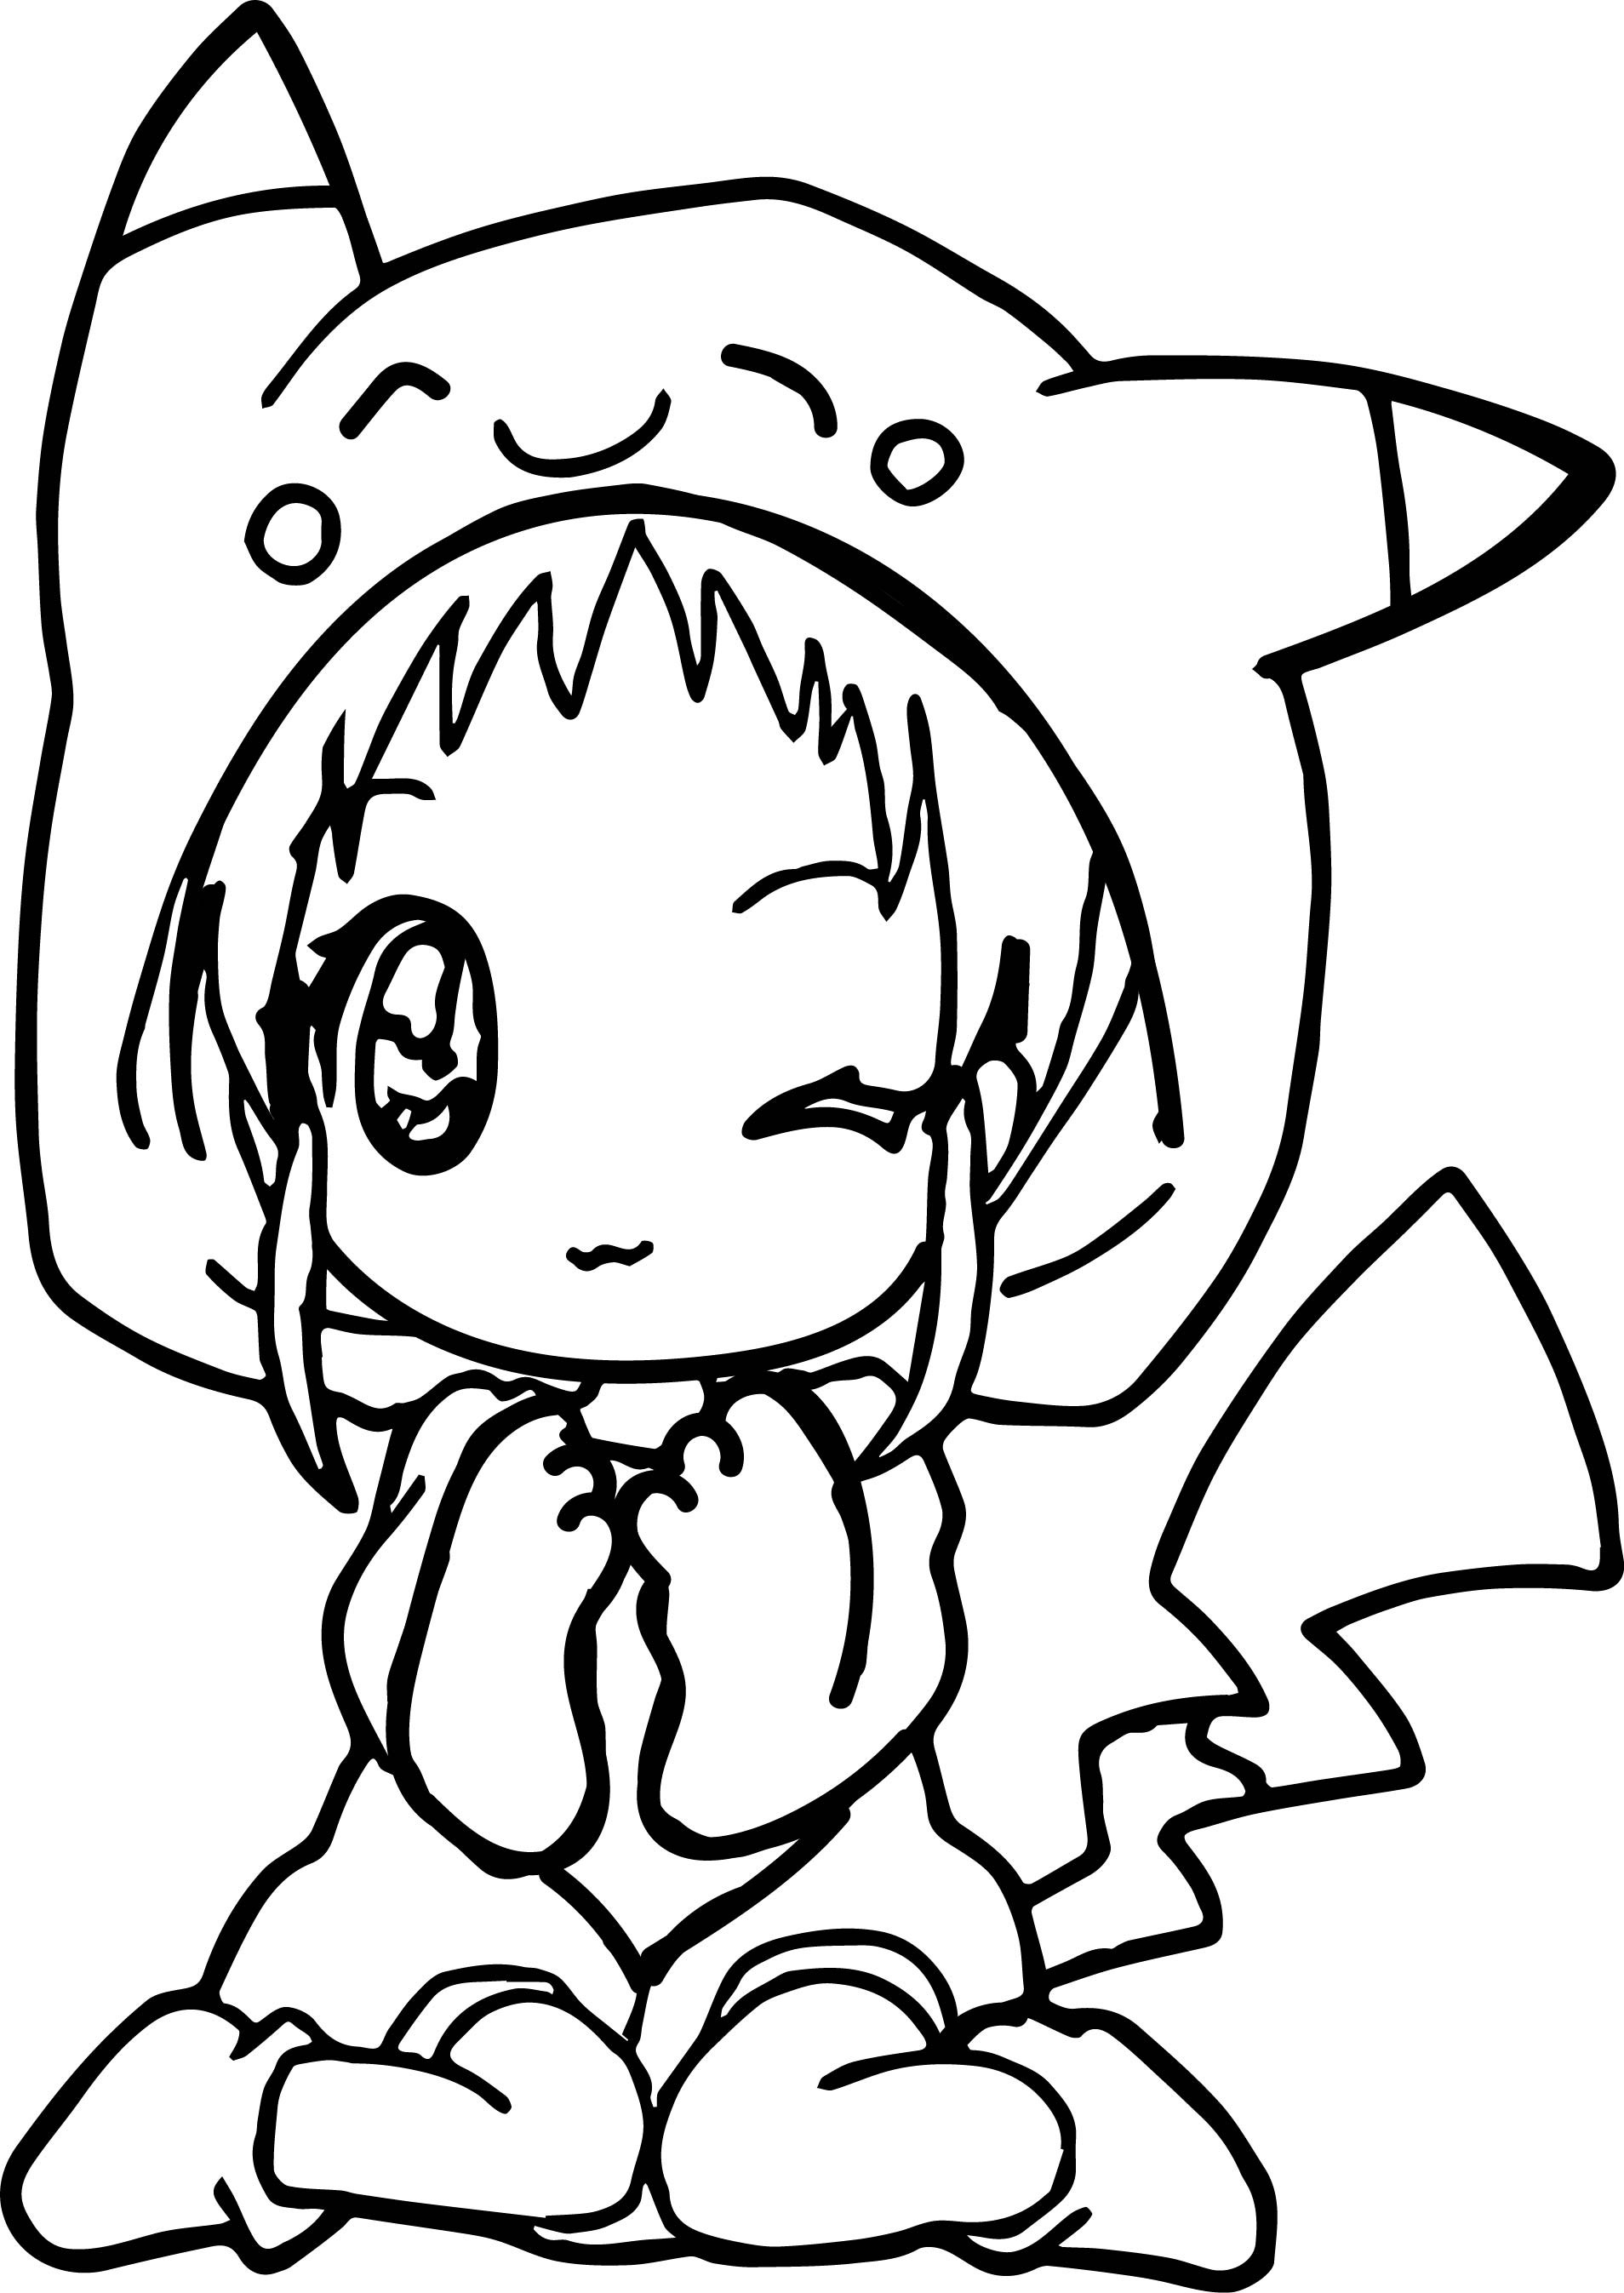 coloring pages of cute things cute things coloring pages coloring home of pages things cute coloring